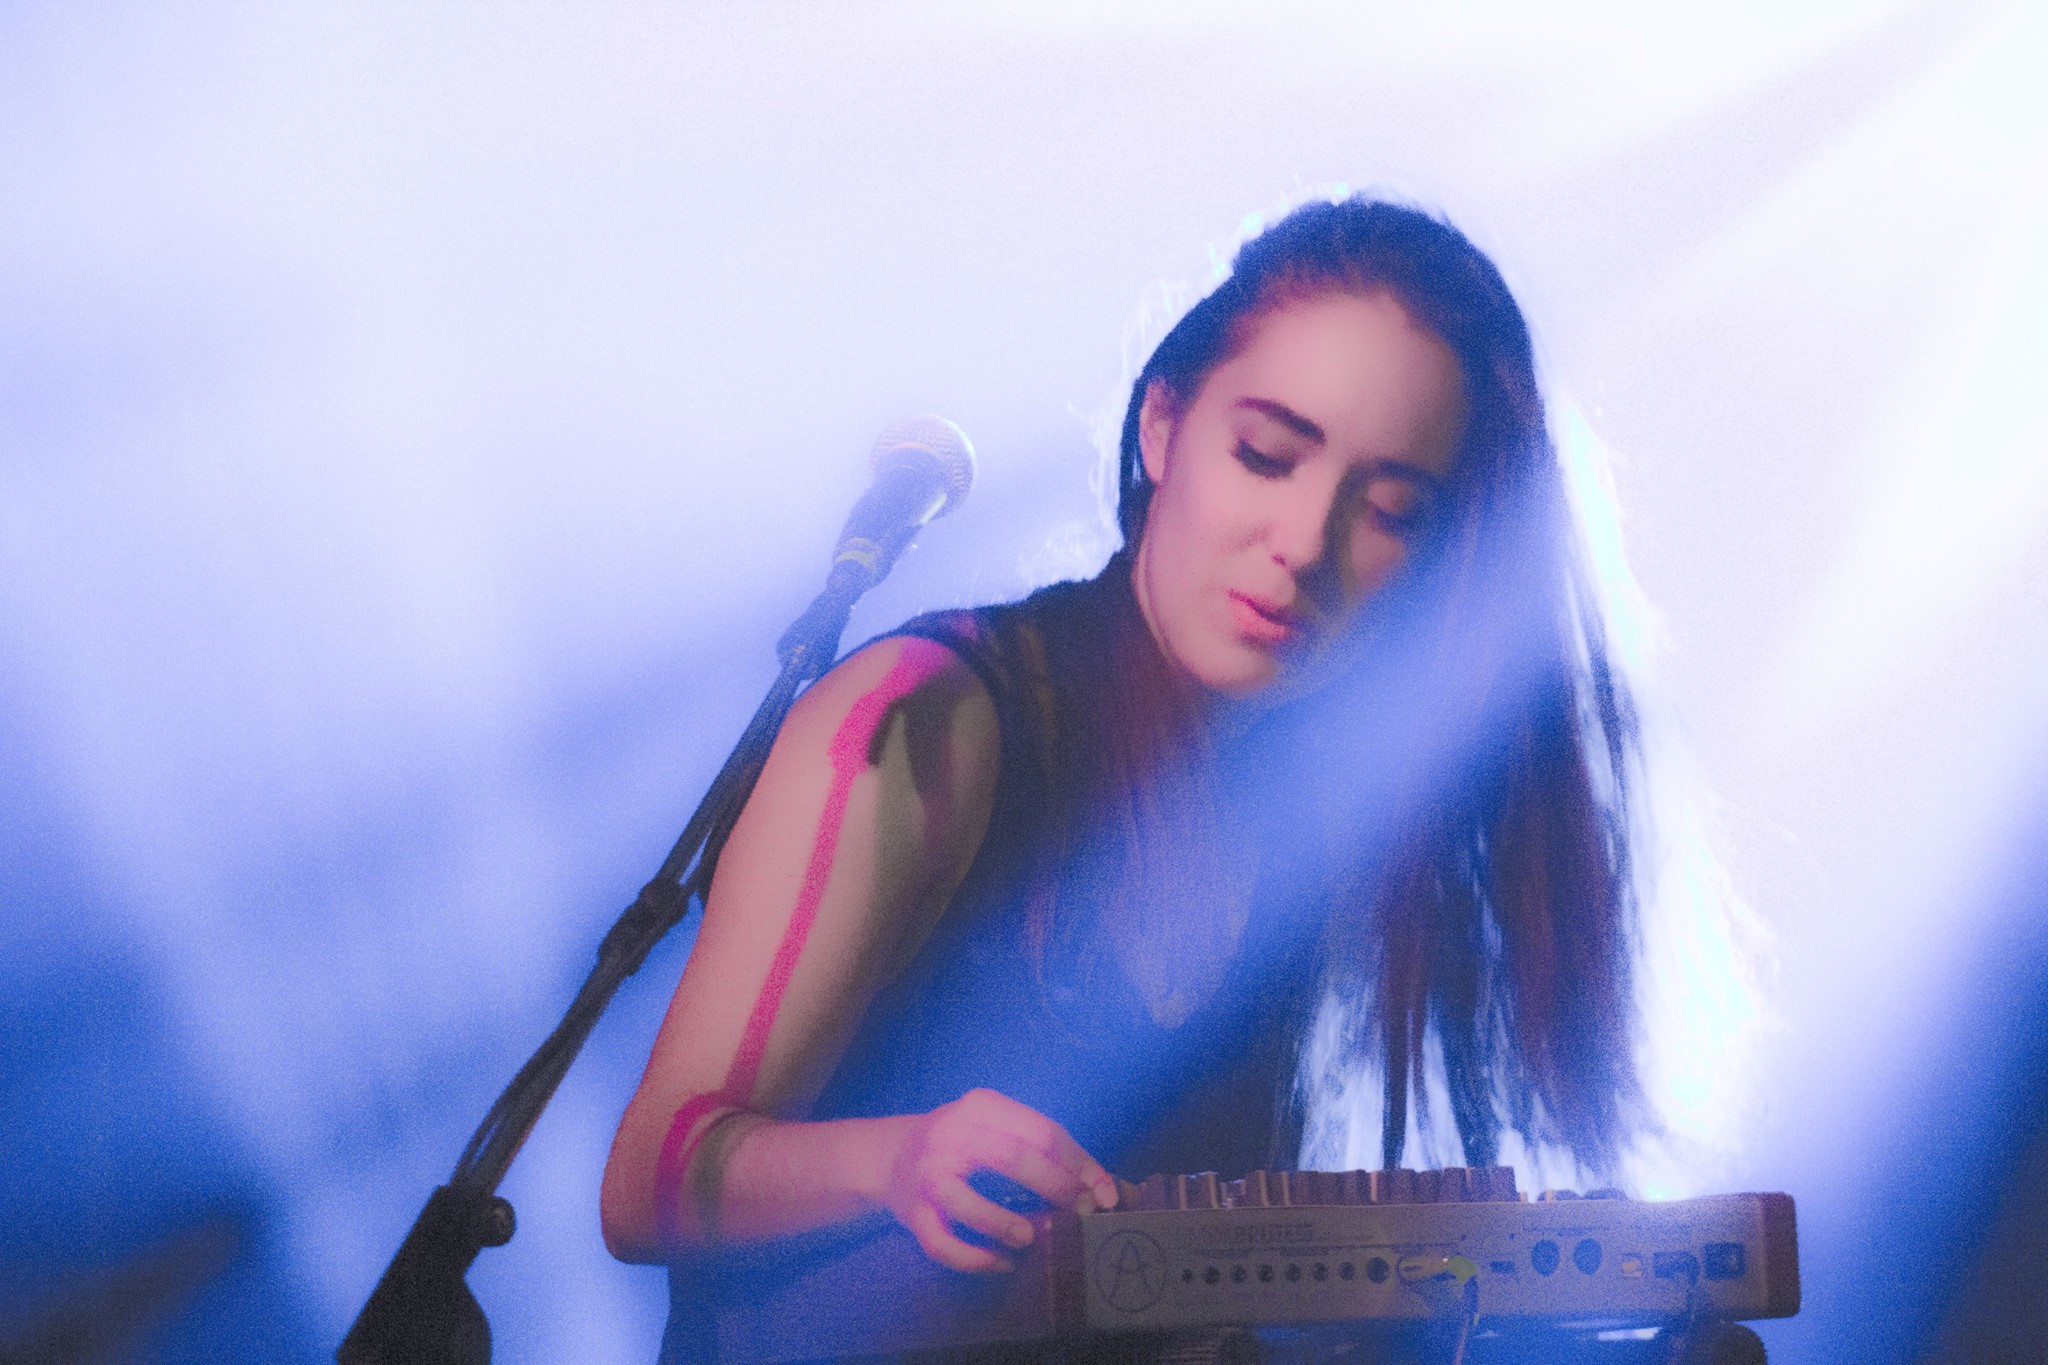 Guest musician with synth pop band Ponteix